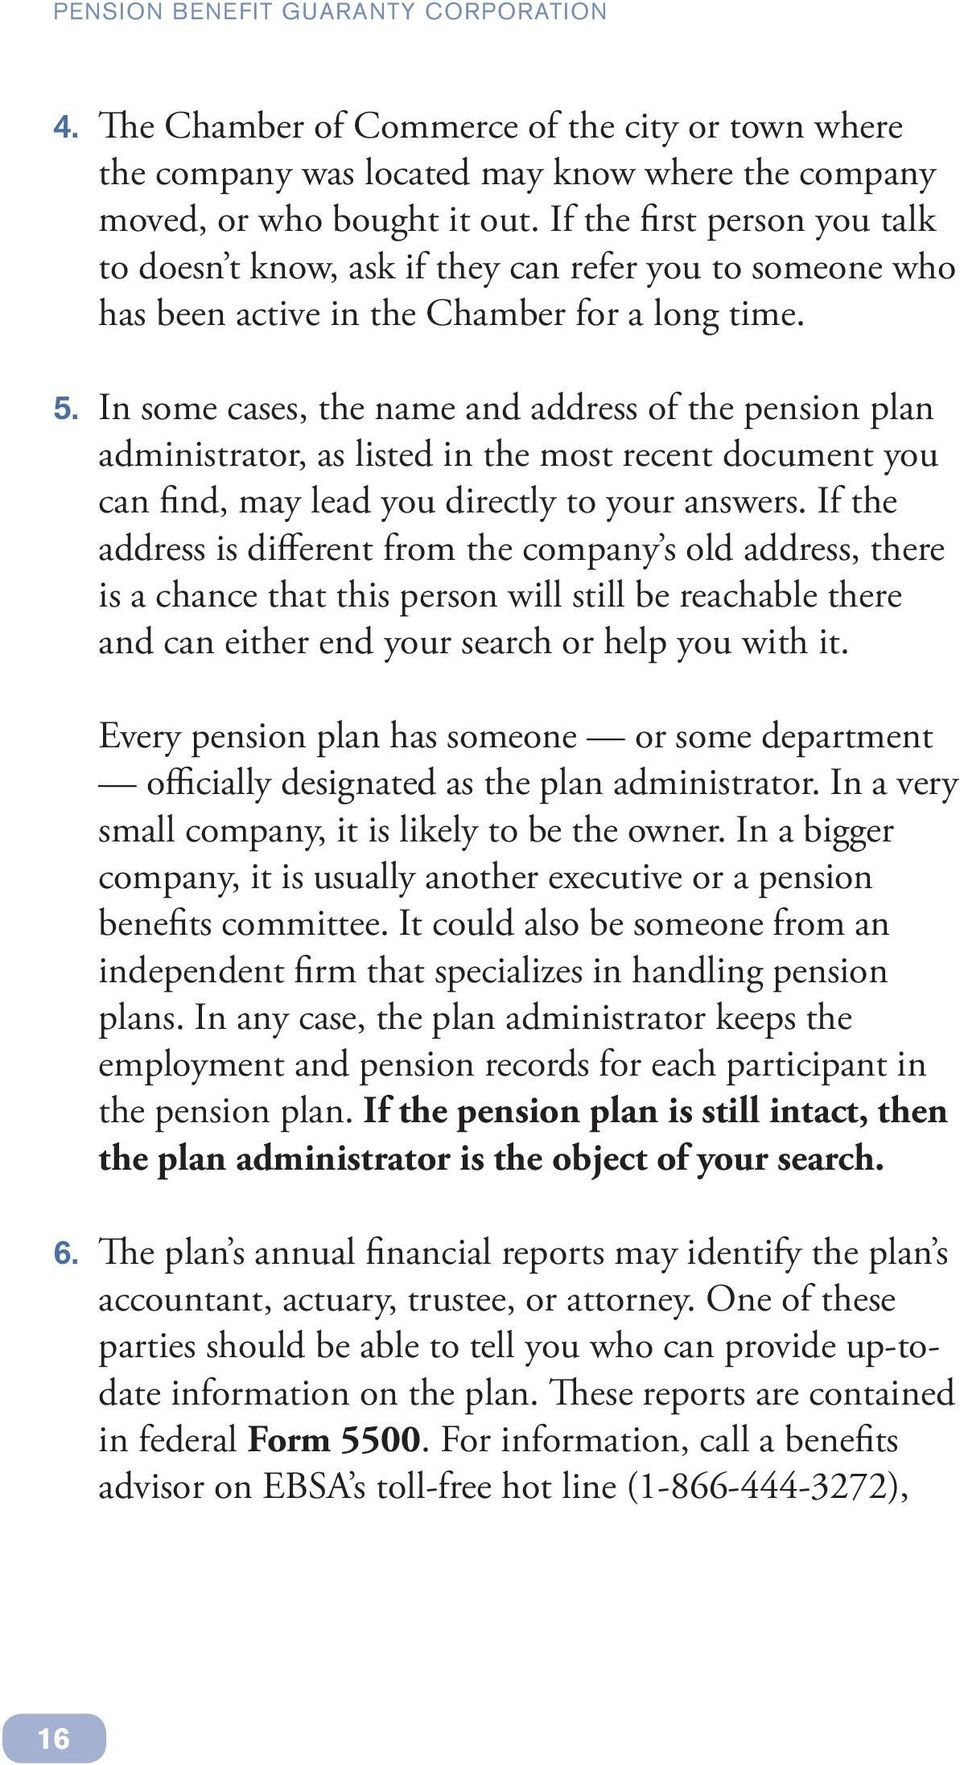 In some cases, the name and address of the pension plan administrator, as listed in the most recent document you can find, may lead you directly to your answers.